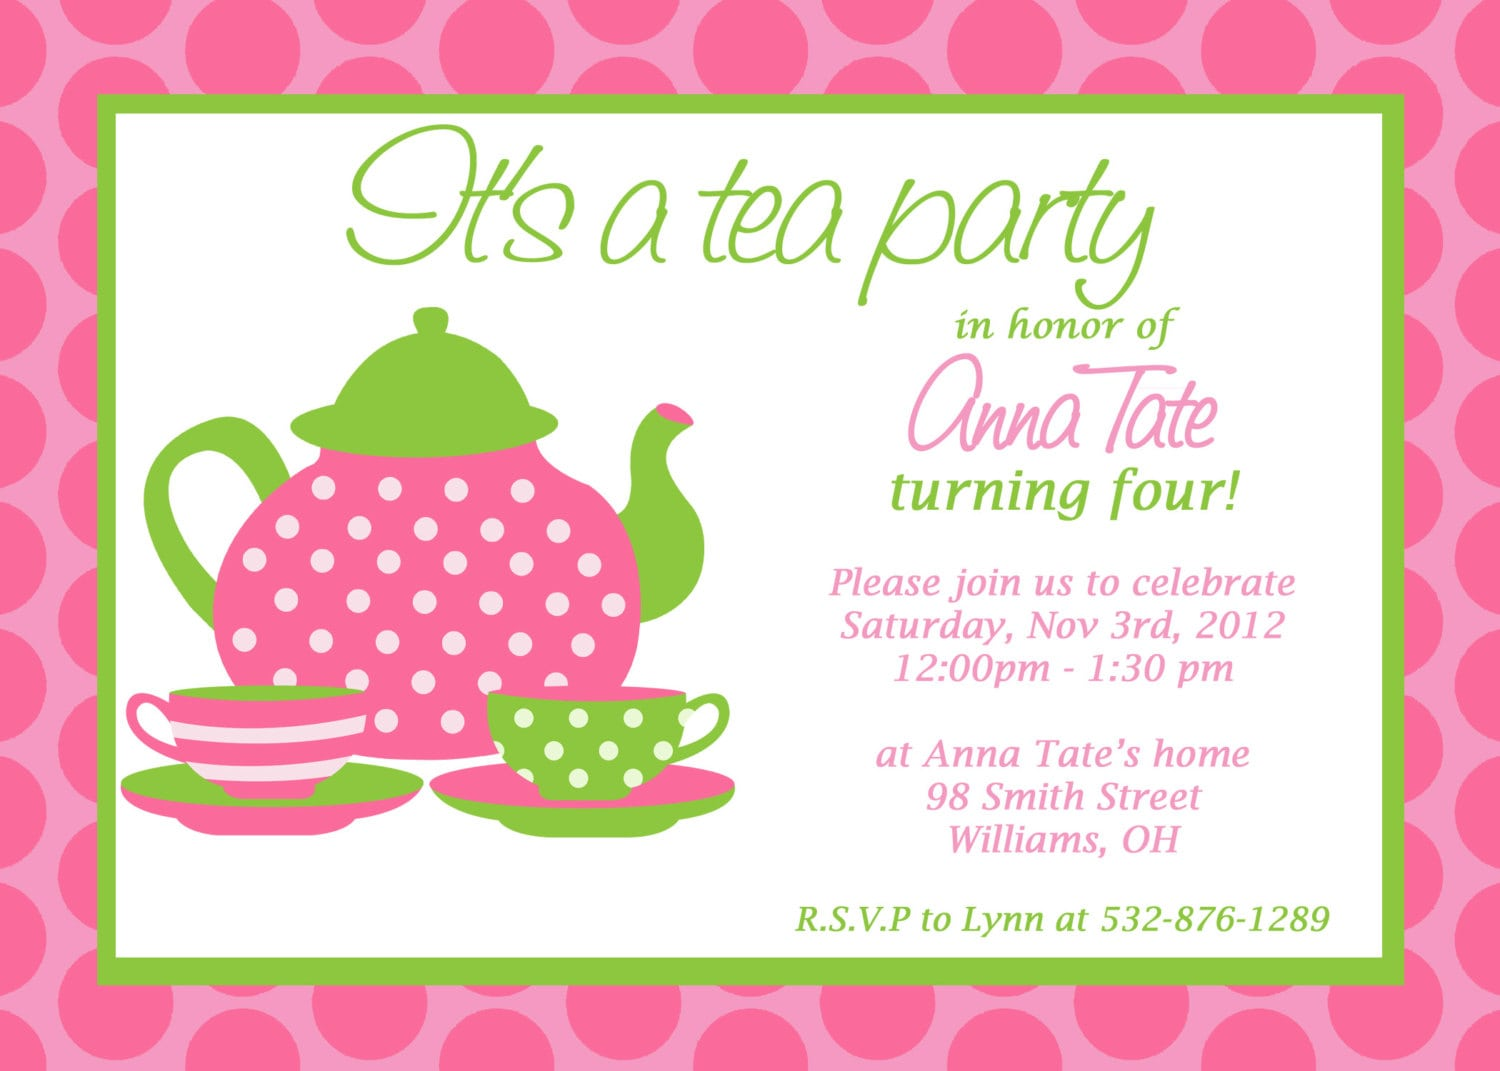 free printable party invitations templatesPosts related to Free Printable Tea Party Invitation Templates JWInOb2s